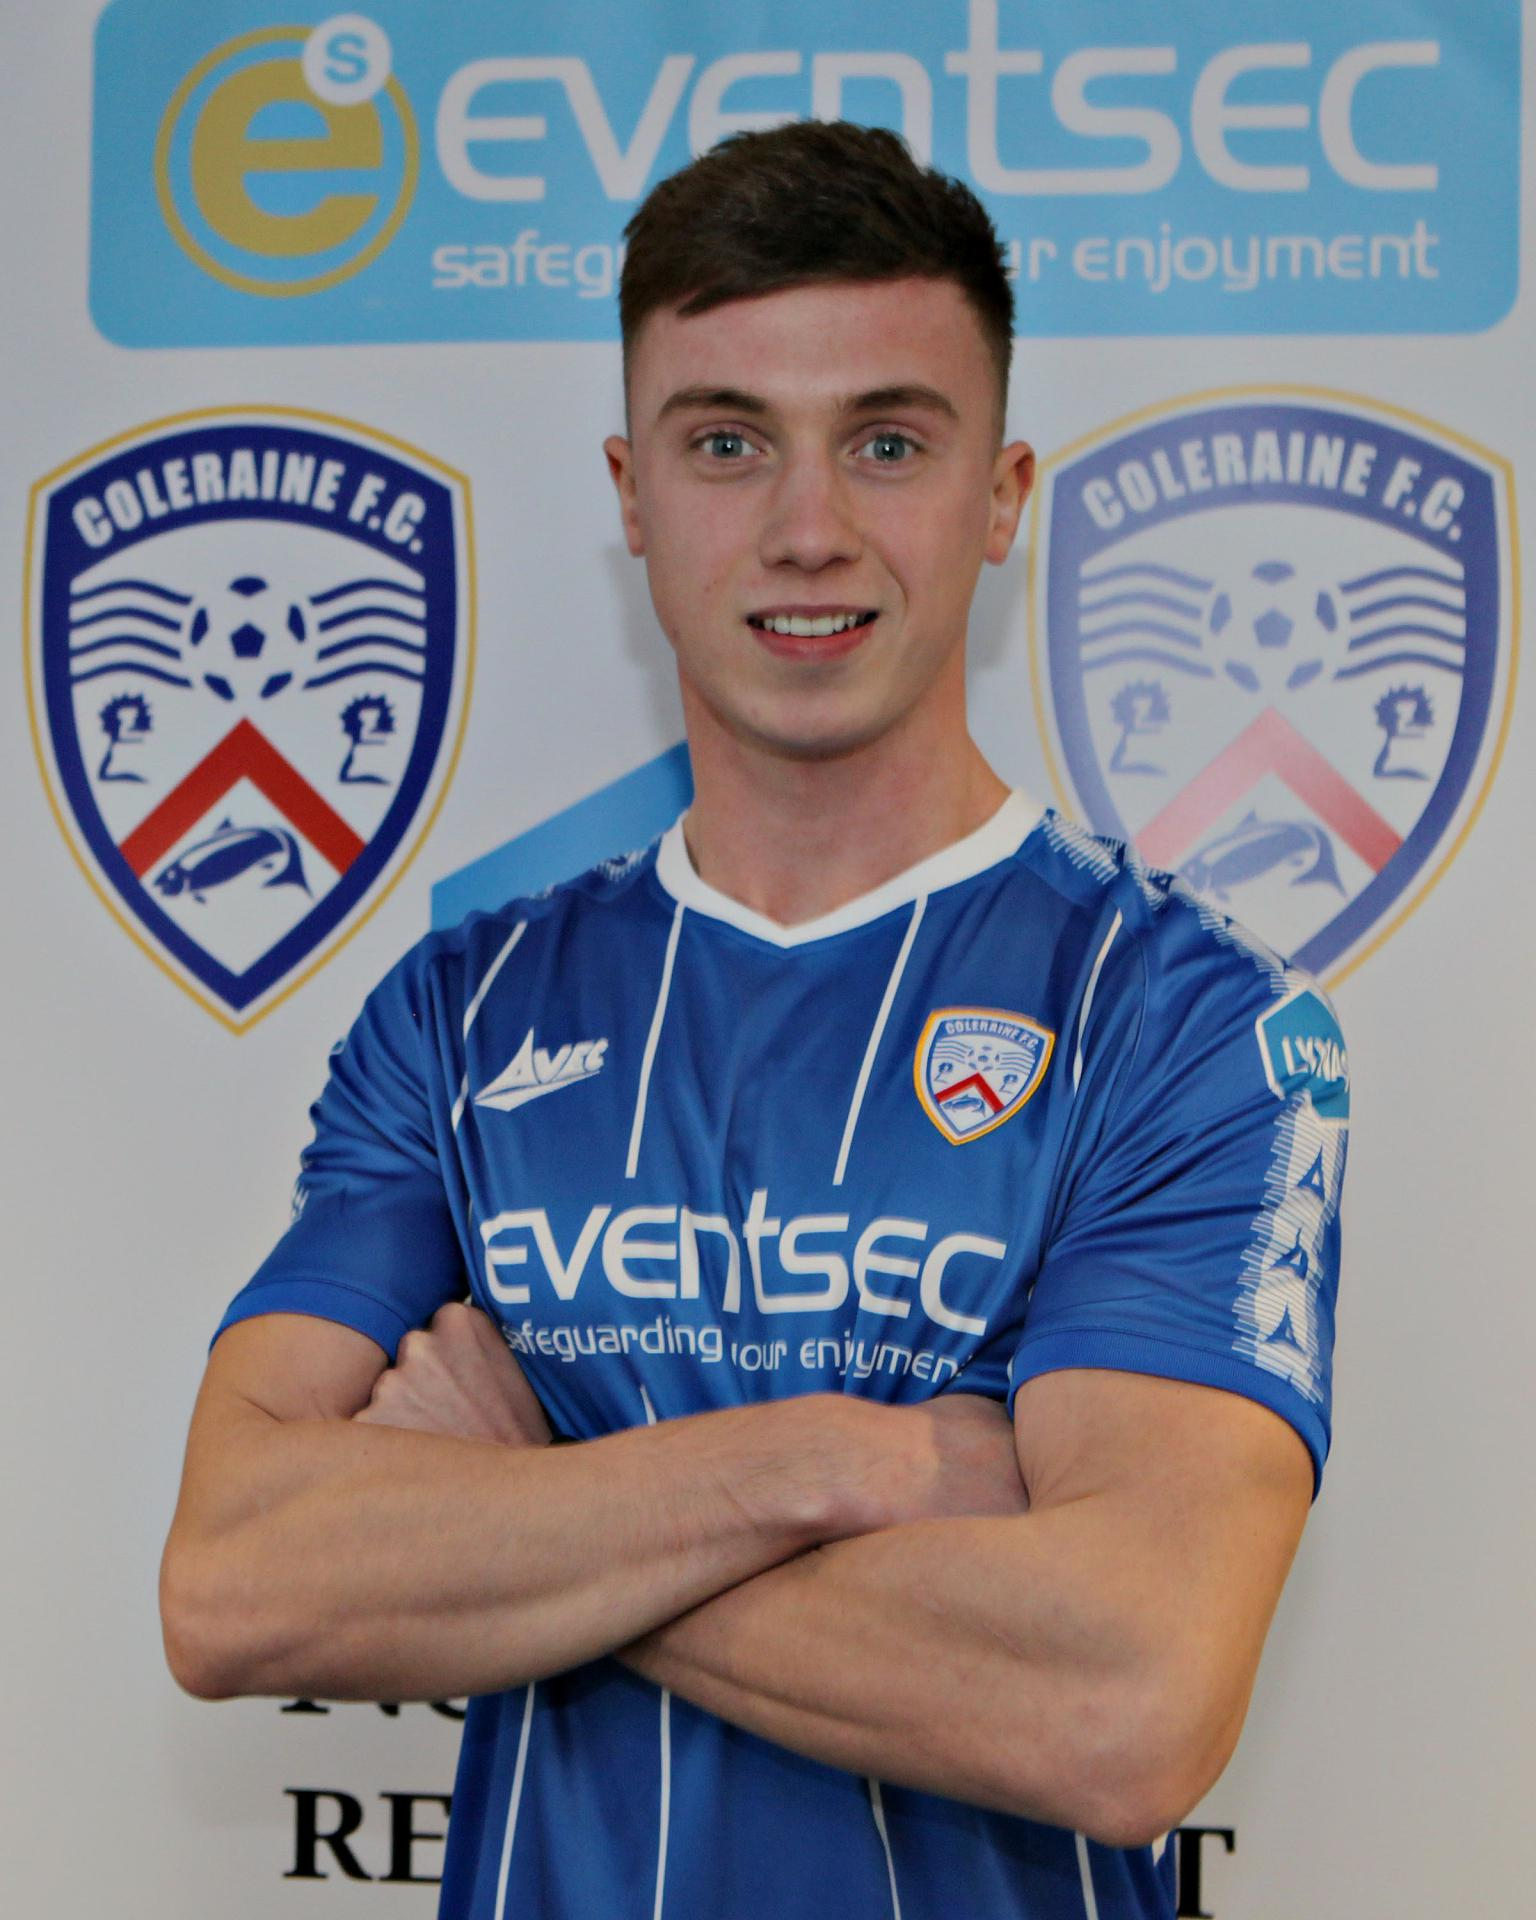 Shevlin signs for Bannsiders - Alpha Newspaper Group